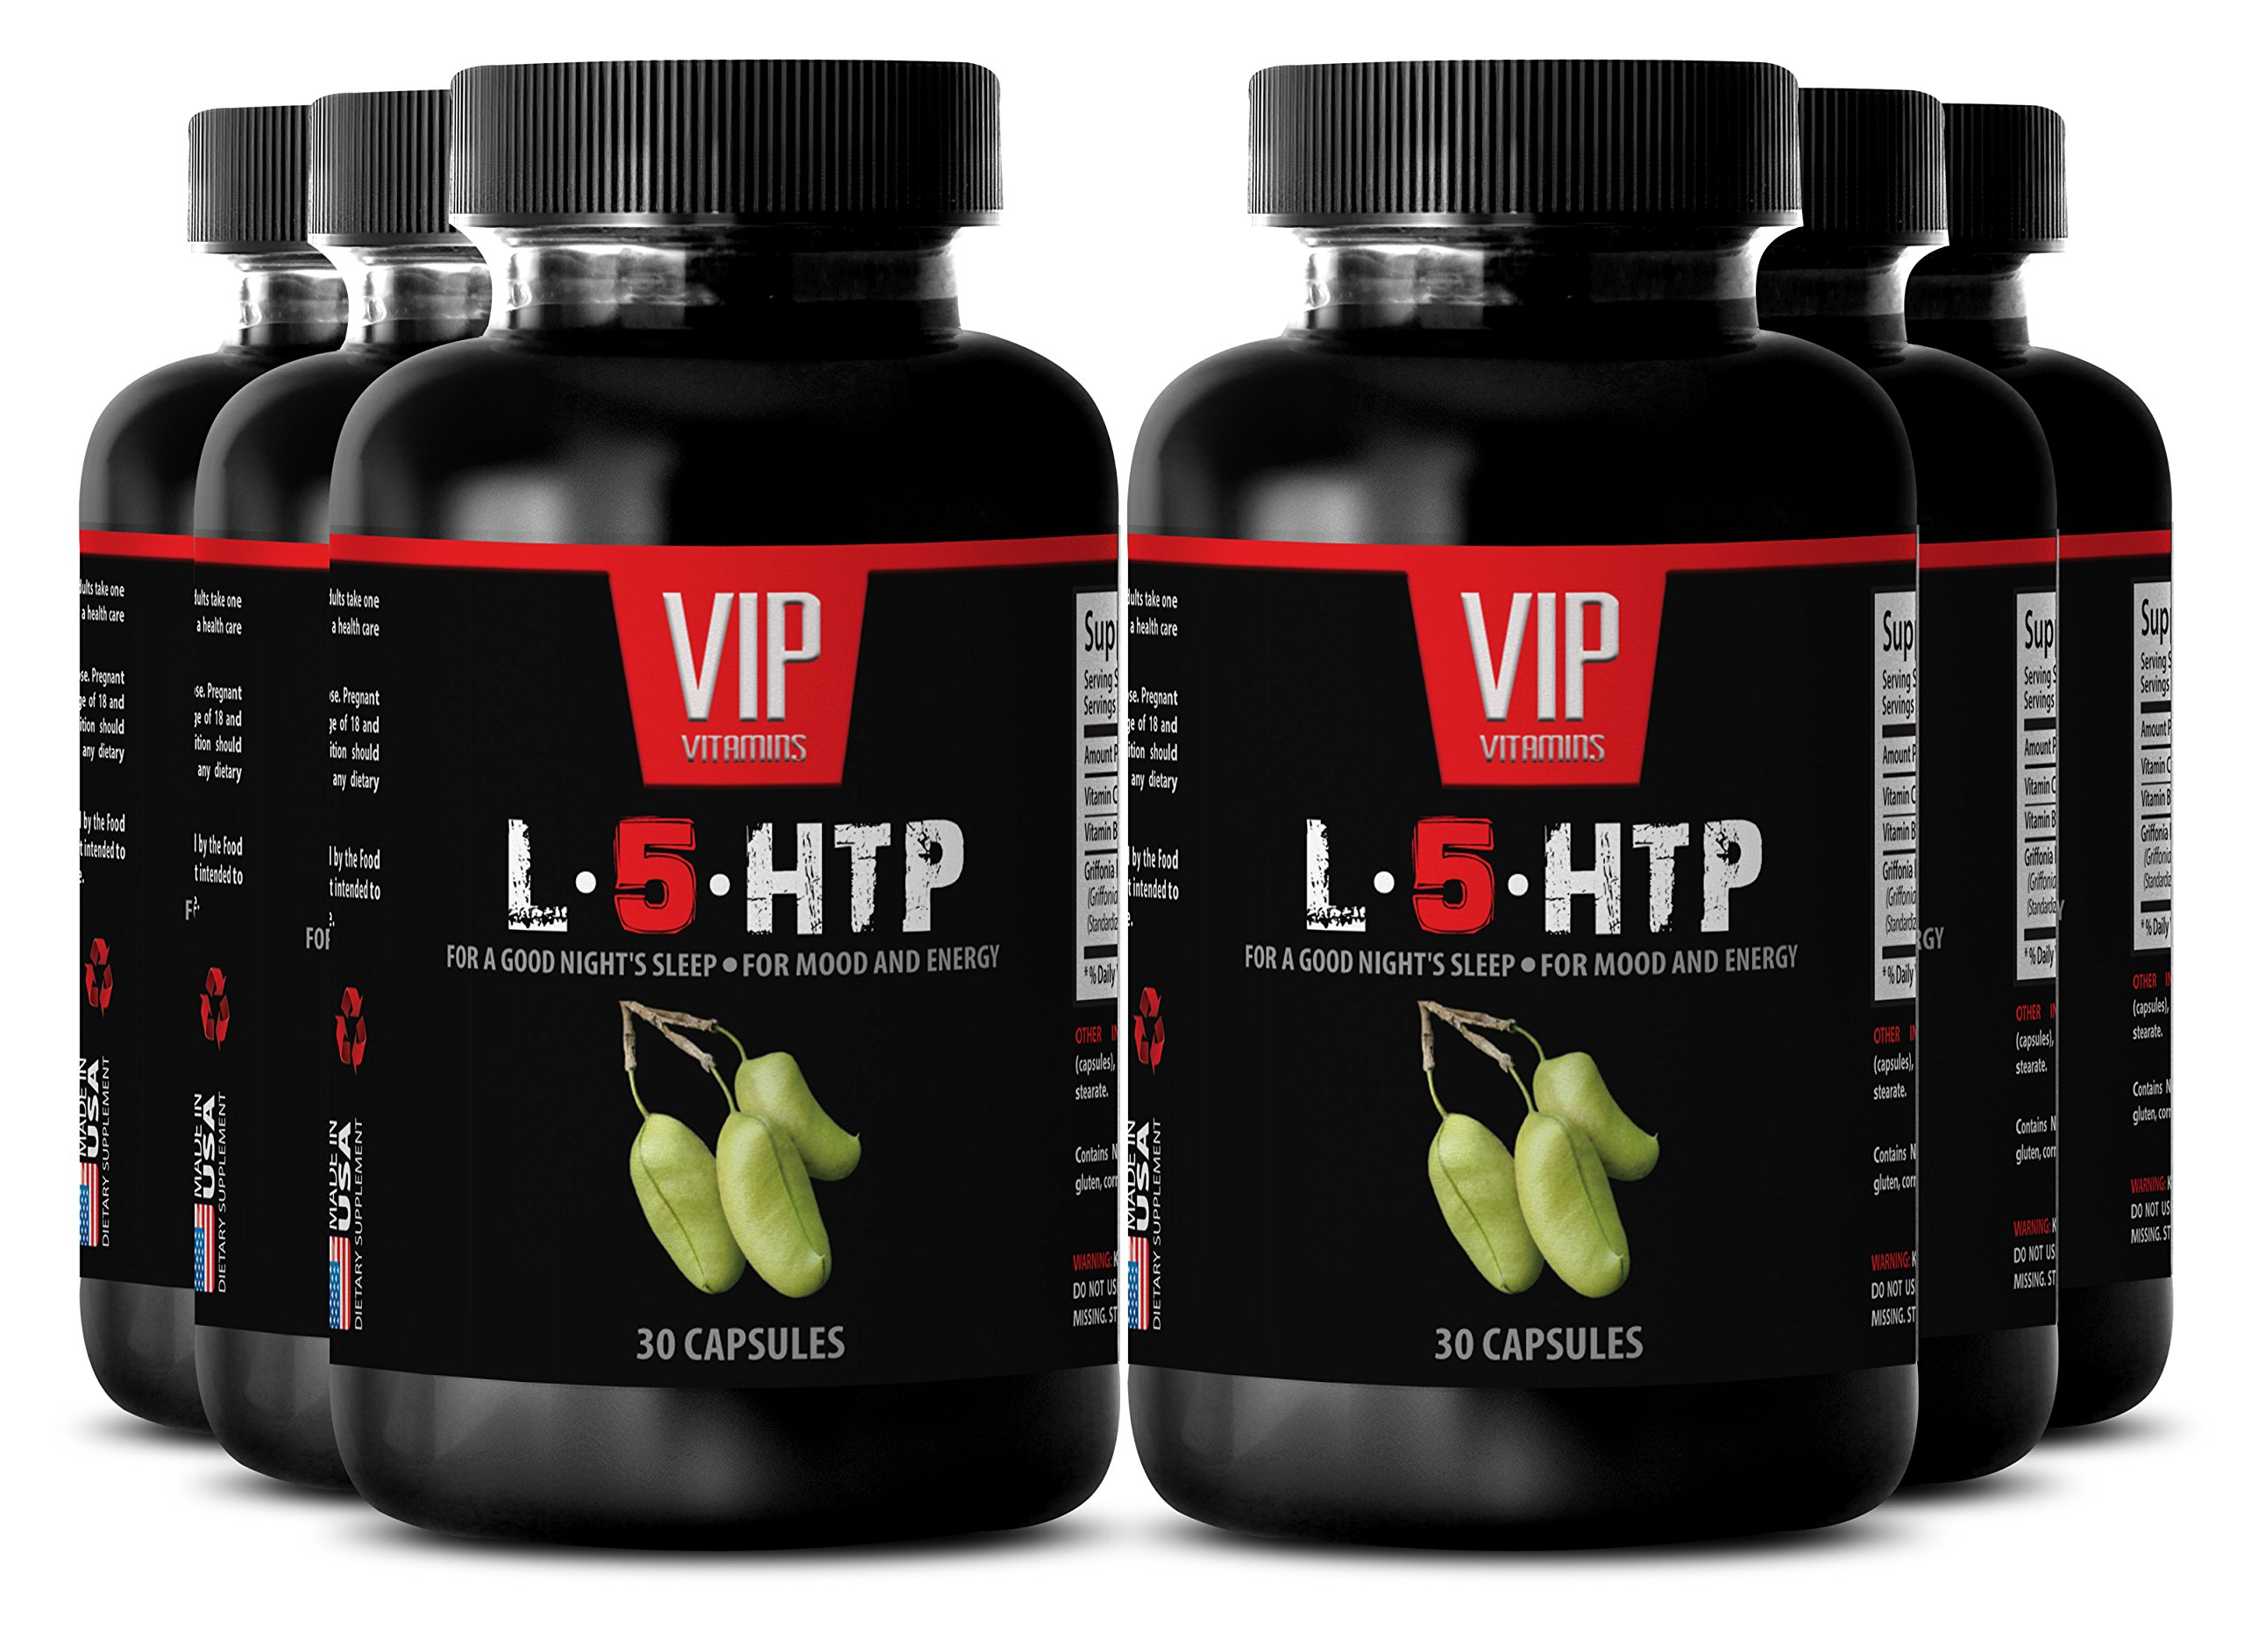 Serotonin mood support - L-5-HTP for a good night's sleep, for mood and energy - Natural energy powder - 6 Bottles 180 Capsules